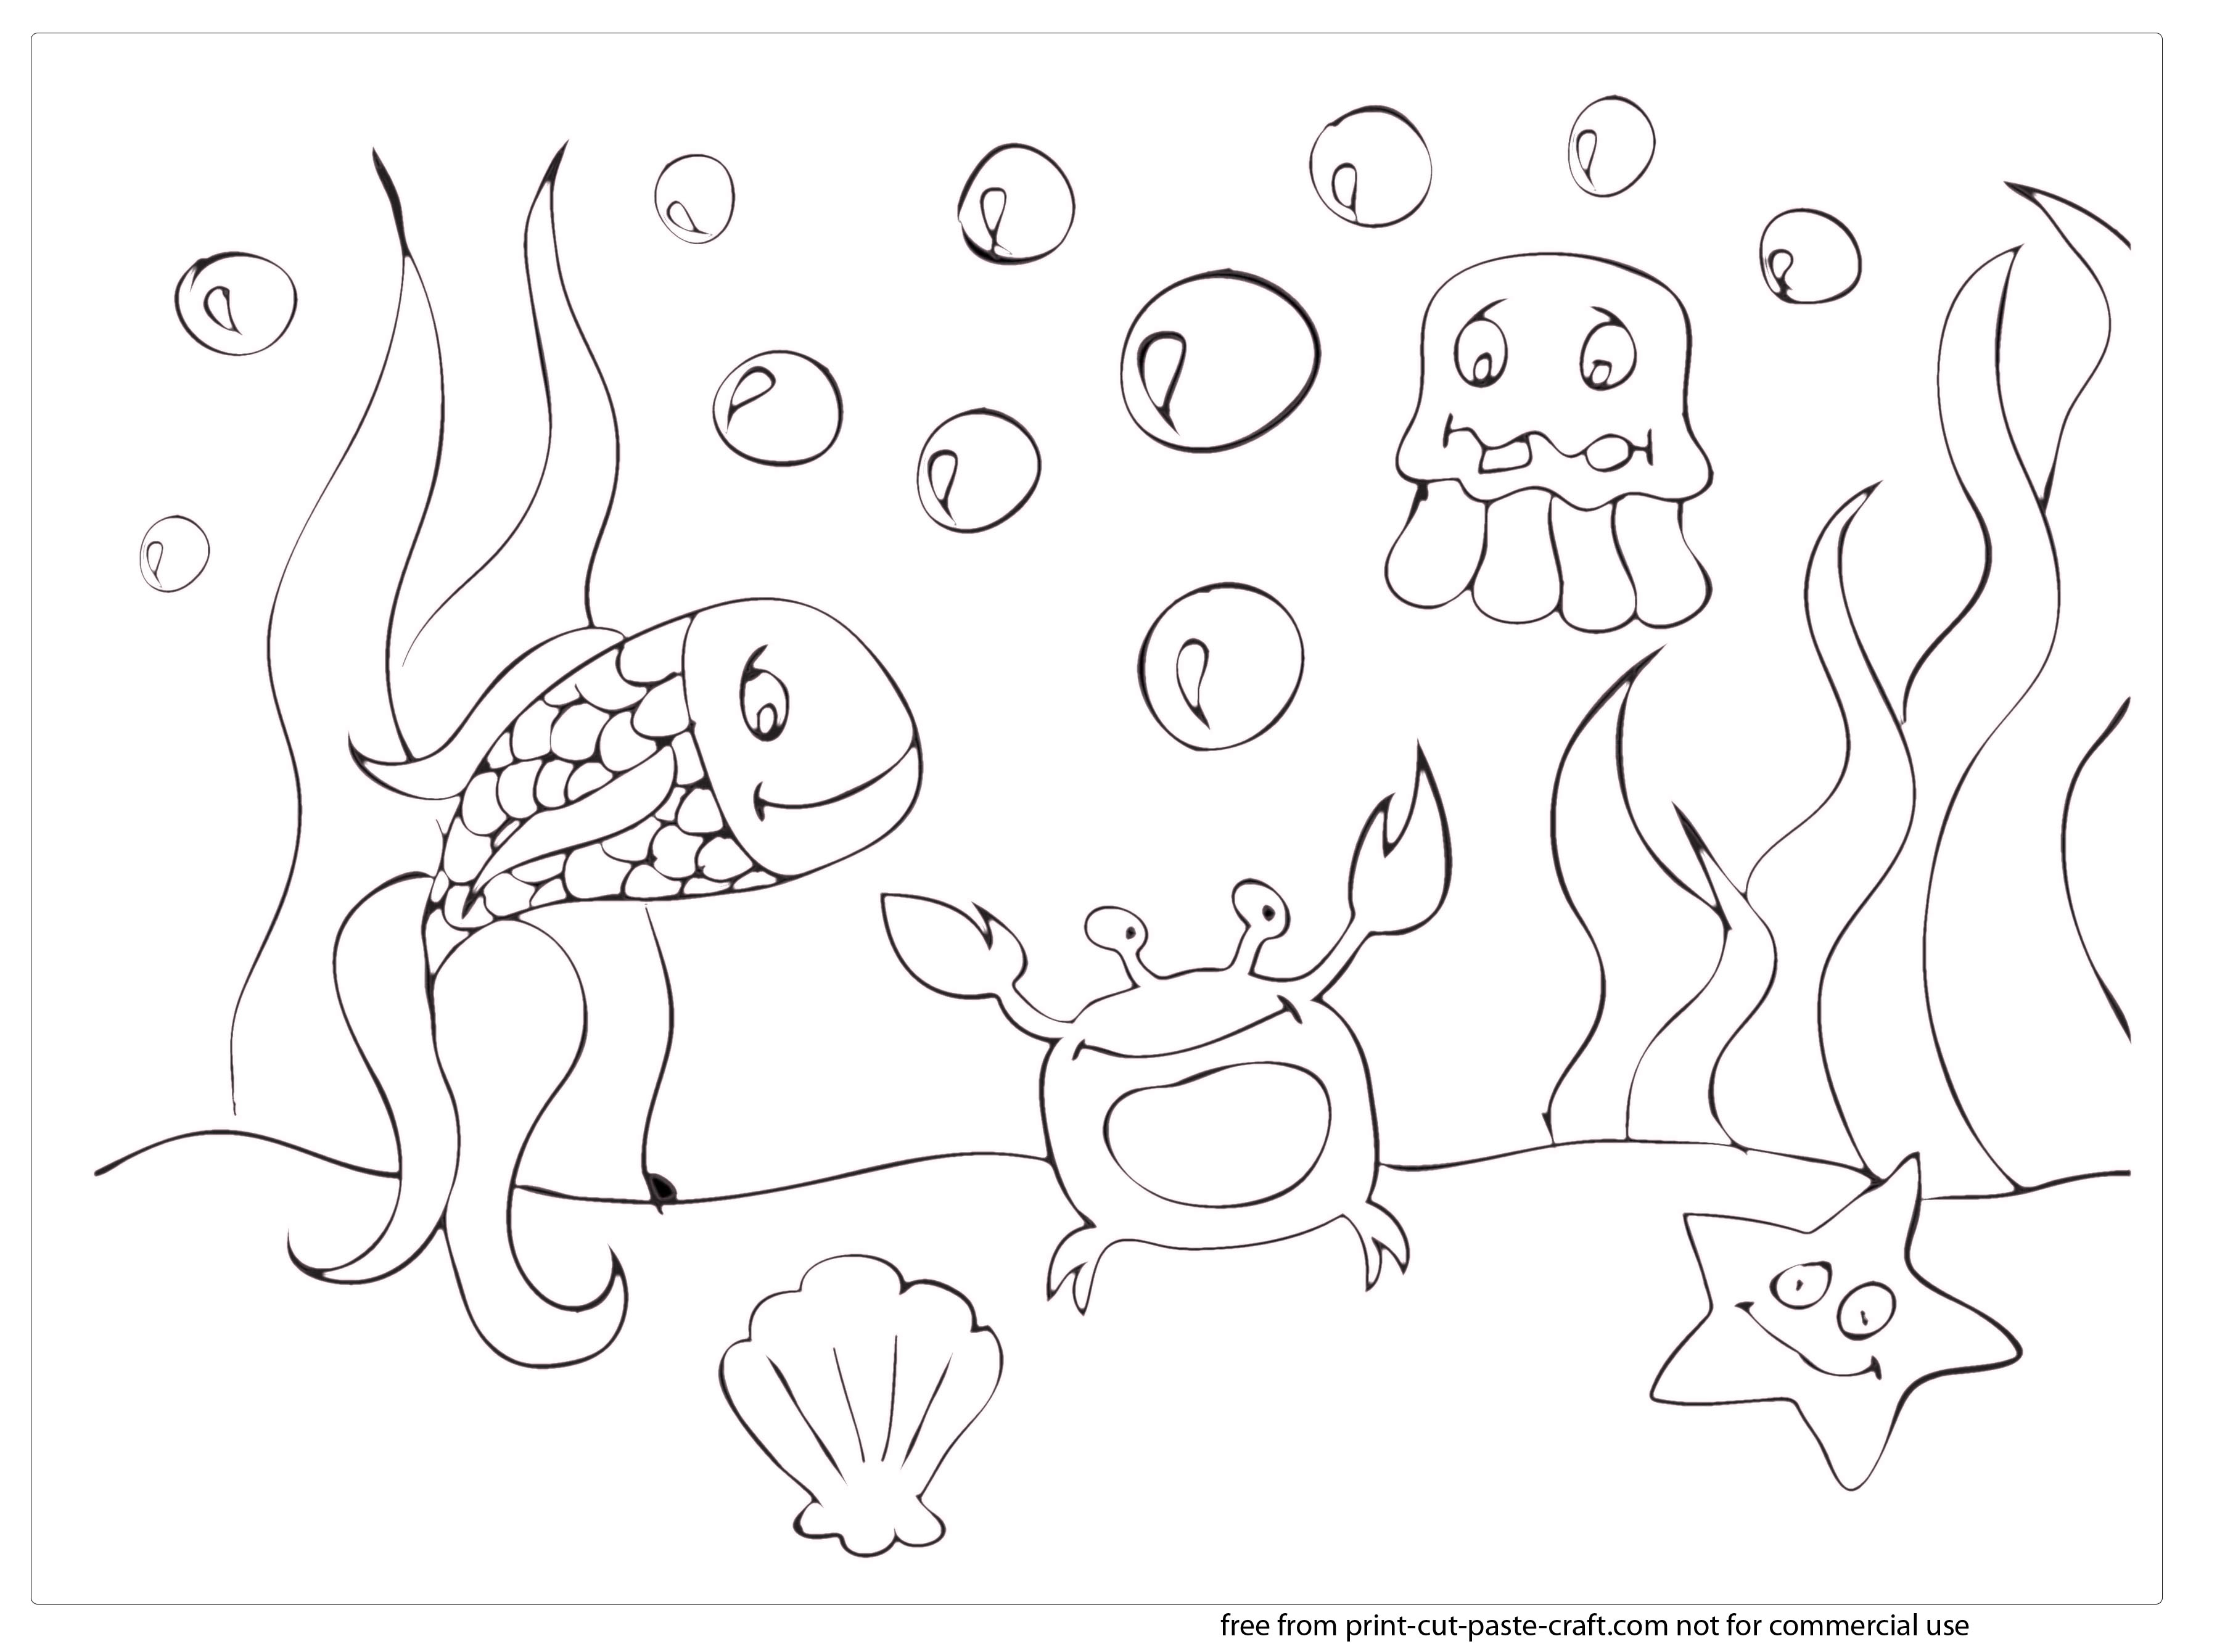 3608x2679 Summer Scene Coloring Pages Print, Cut, Paste, Craft Blog